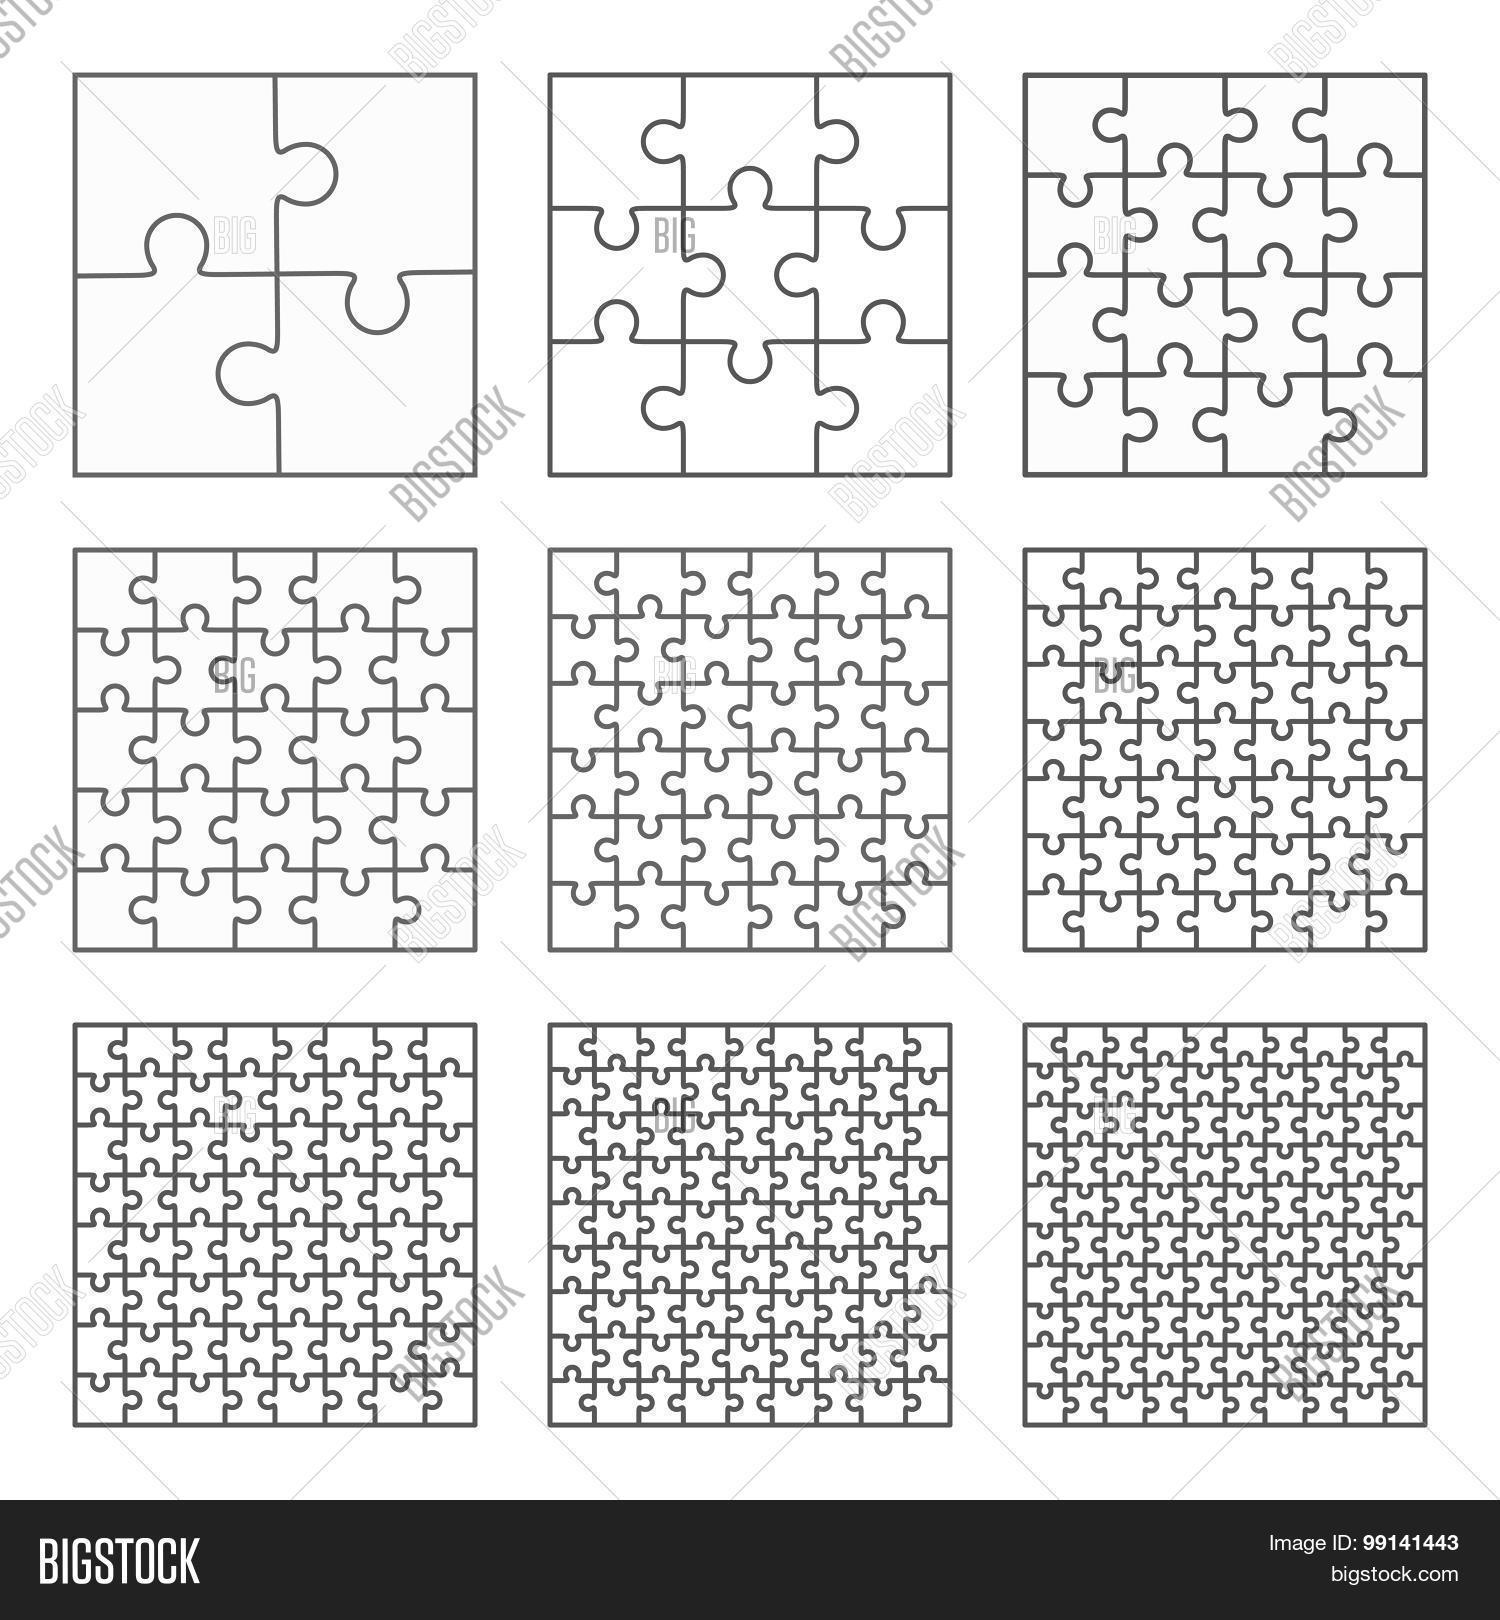 Jigsaw Puzzle Nine Vector Flat Vector & Photo | Bigstock